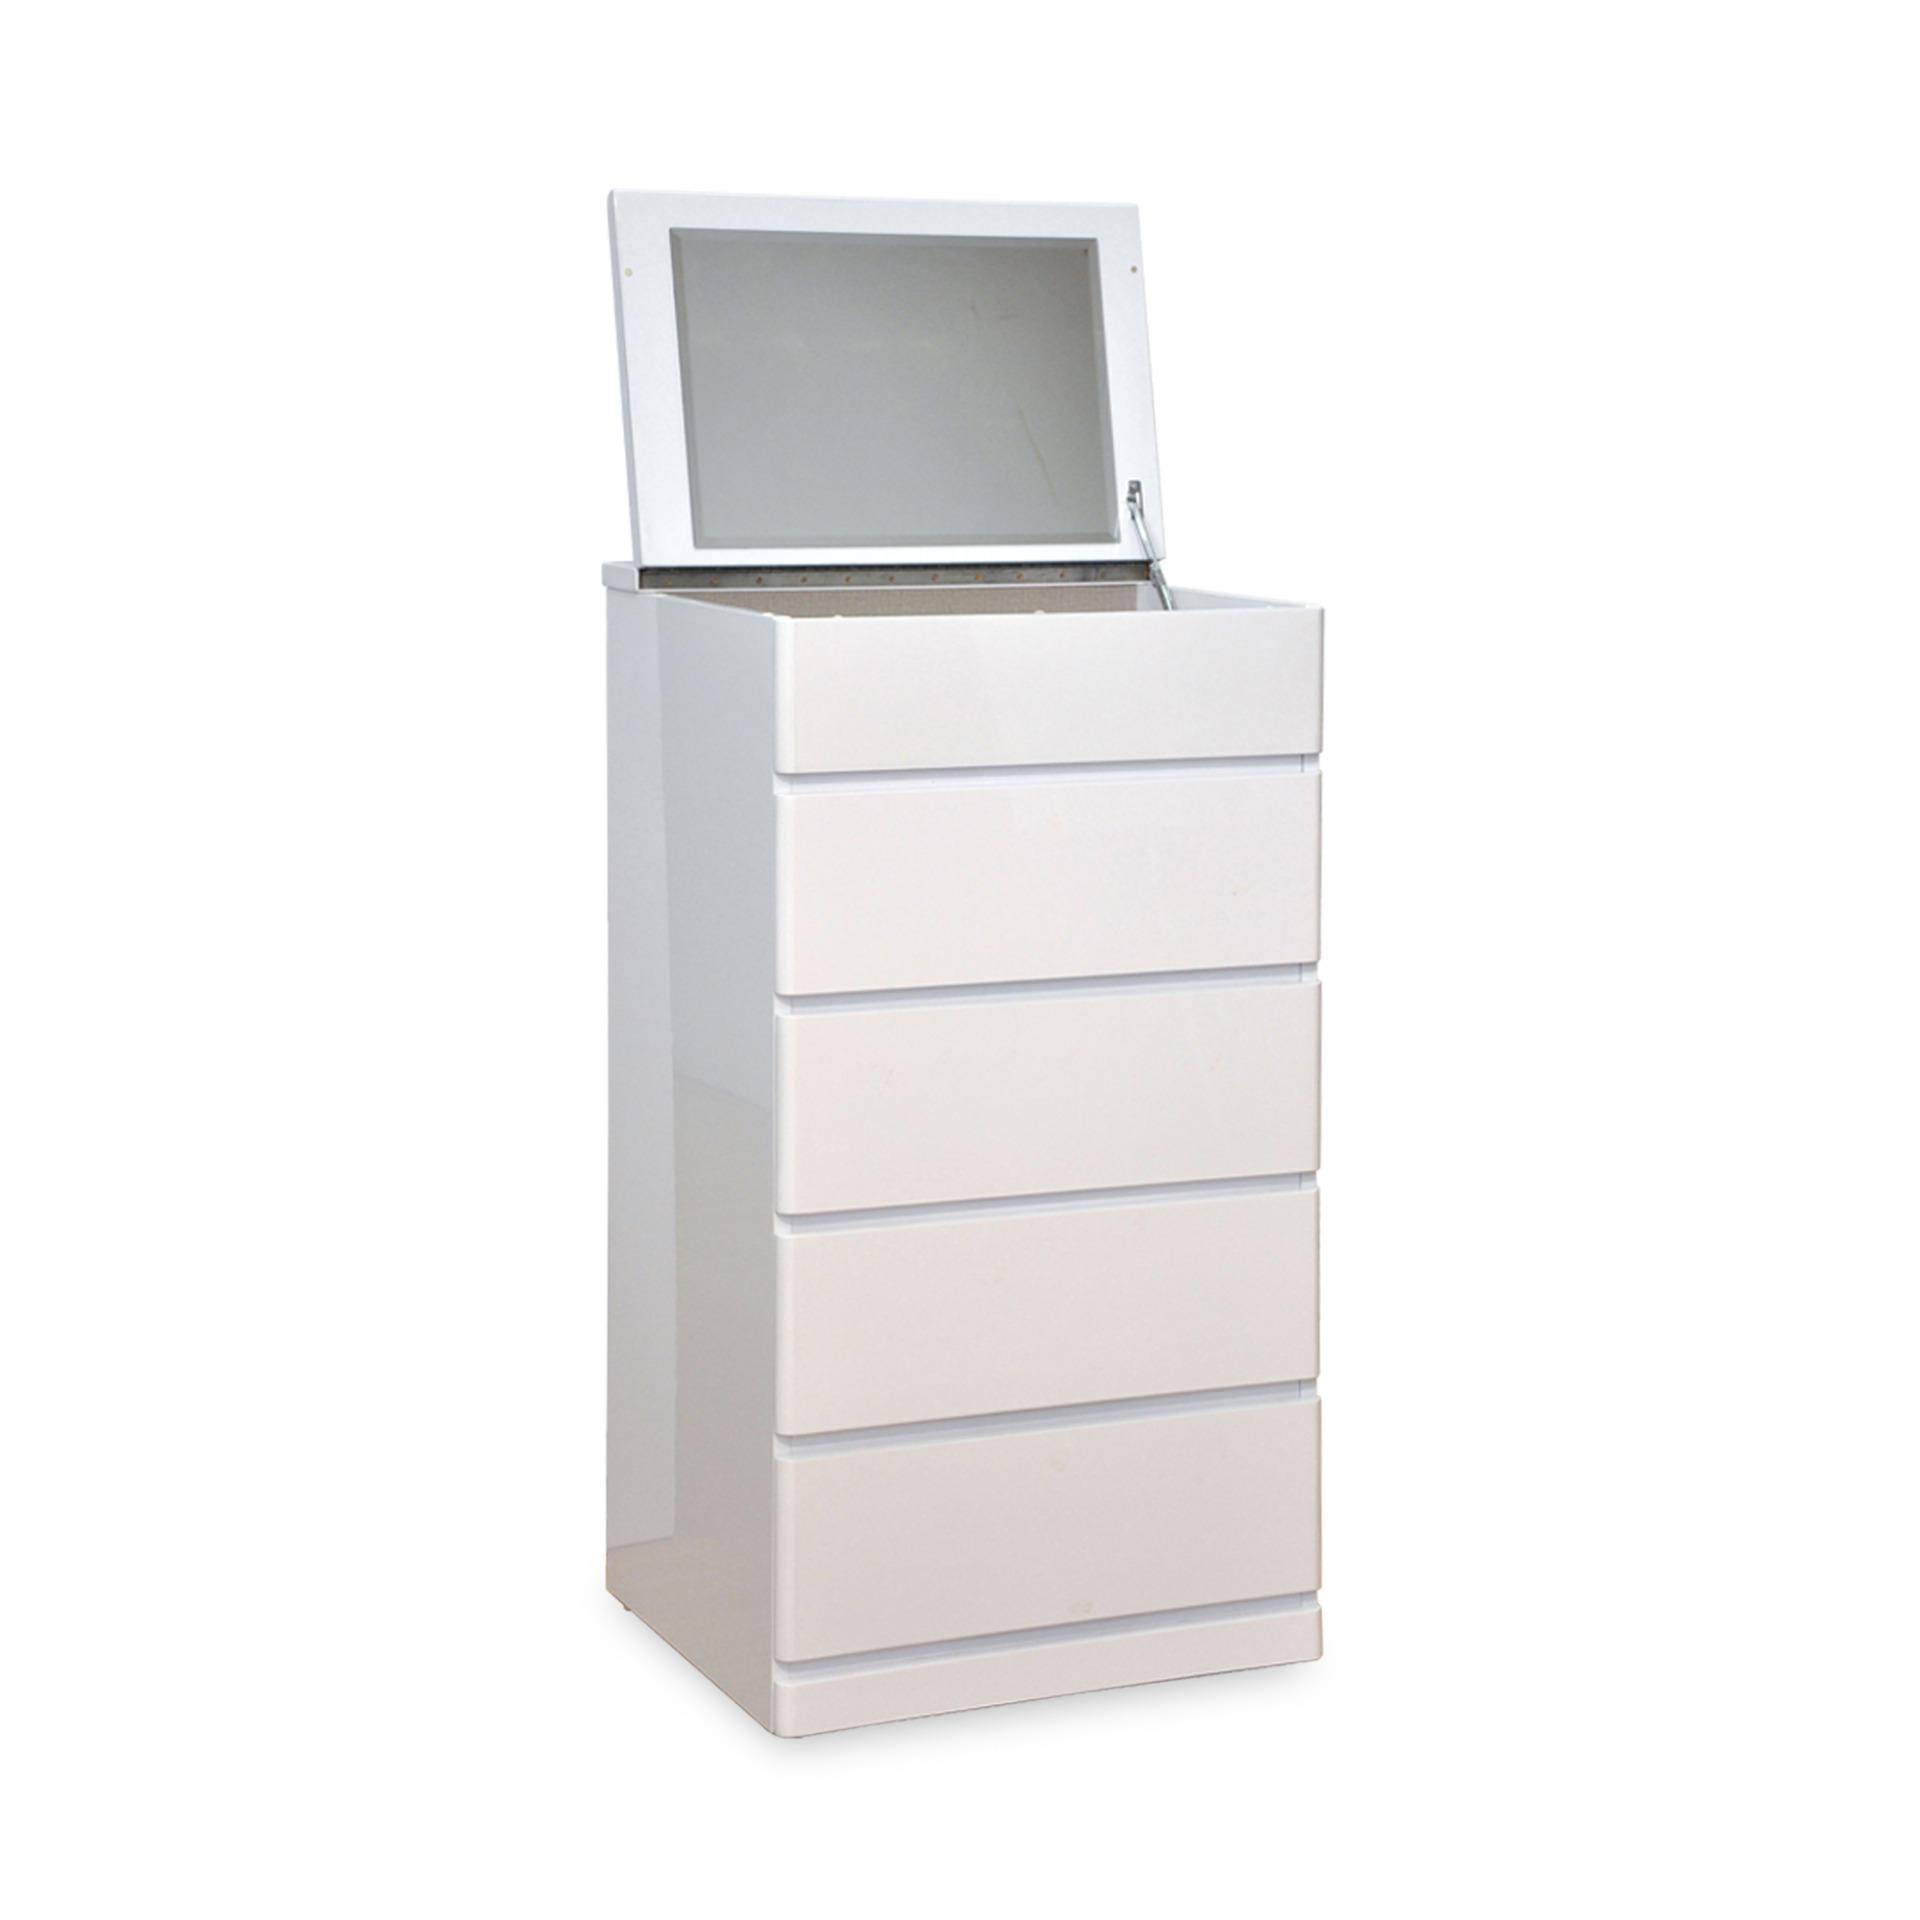 Camila Chest of Drawers (FREE DELIVERY)(FREE ASSEMBLY)